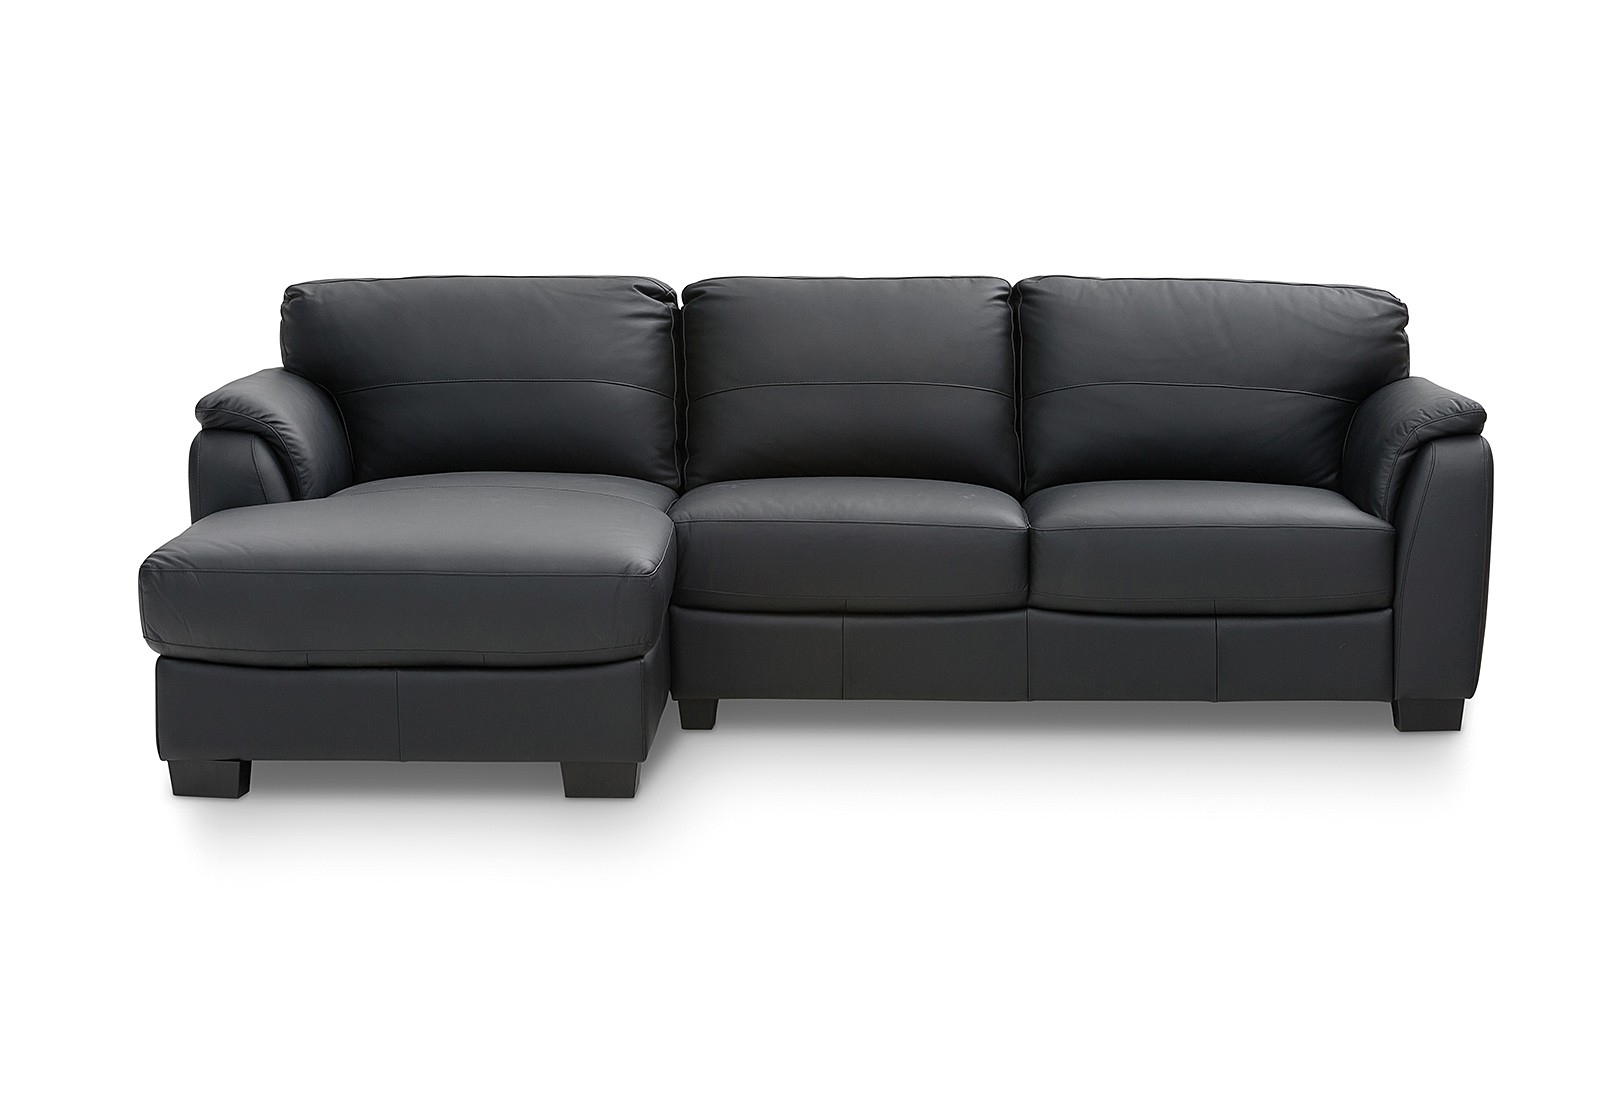 Marissa Leather 3 Seater Chaise | Amart Furniture Inside Marissa Sofa Chairs (Image 8 of 20)